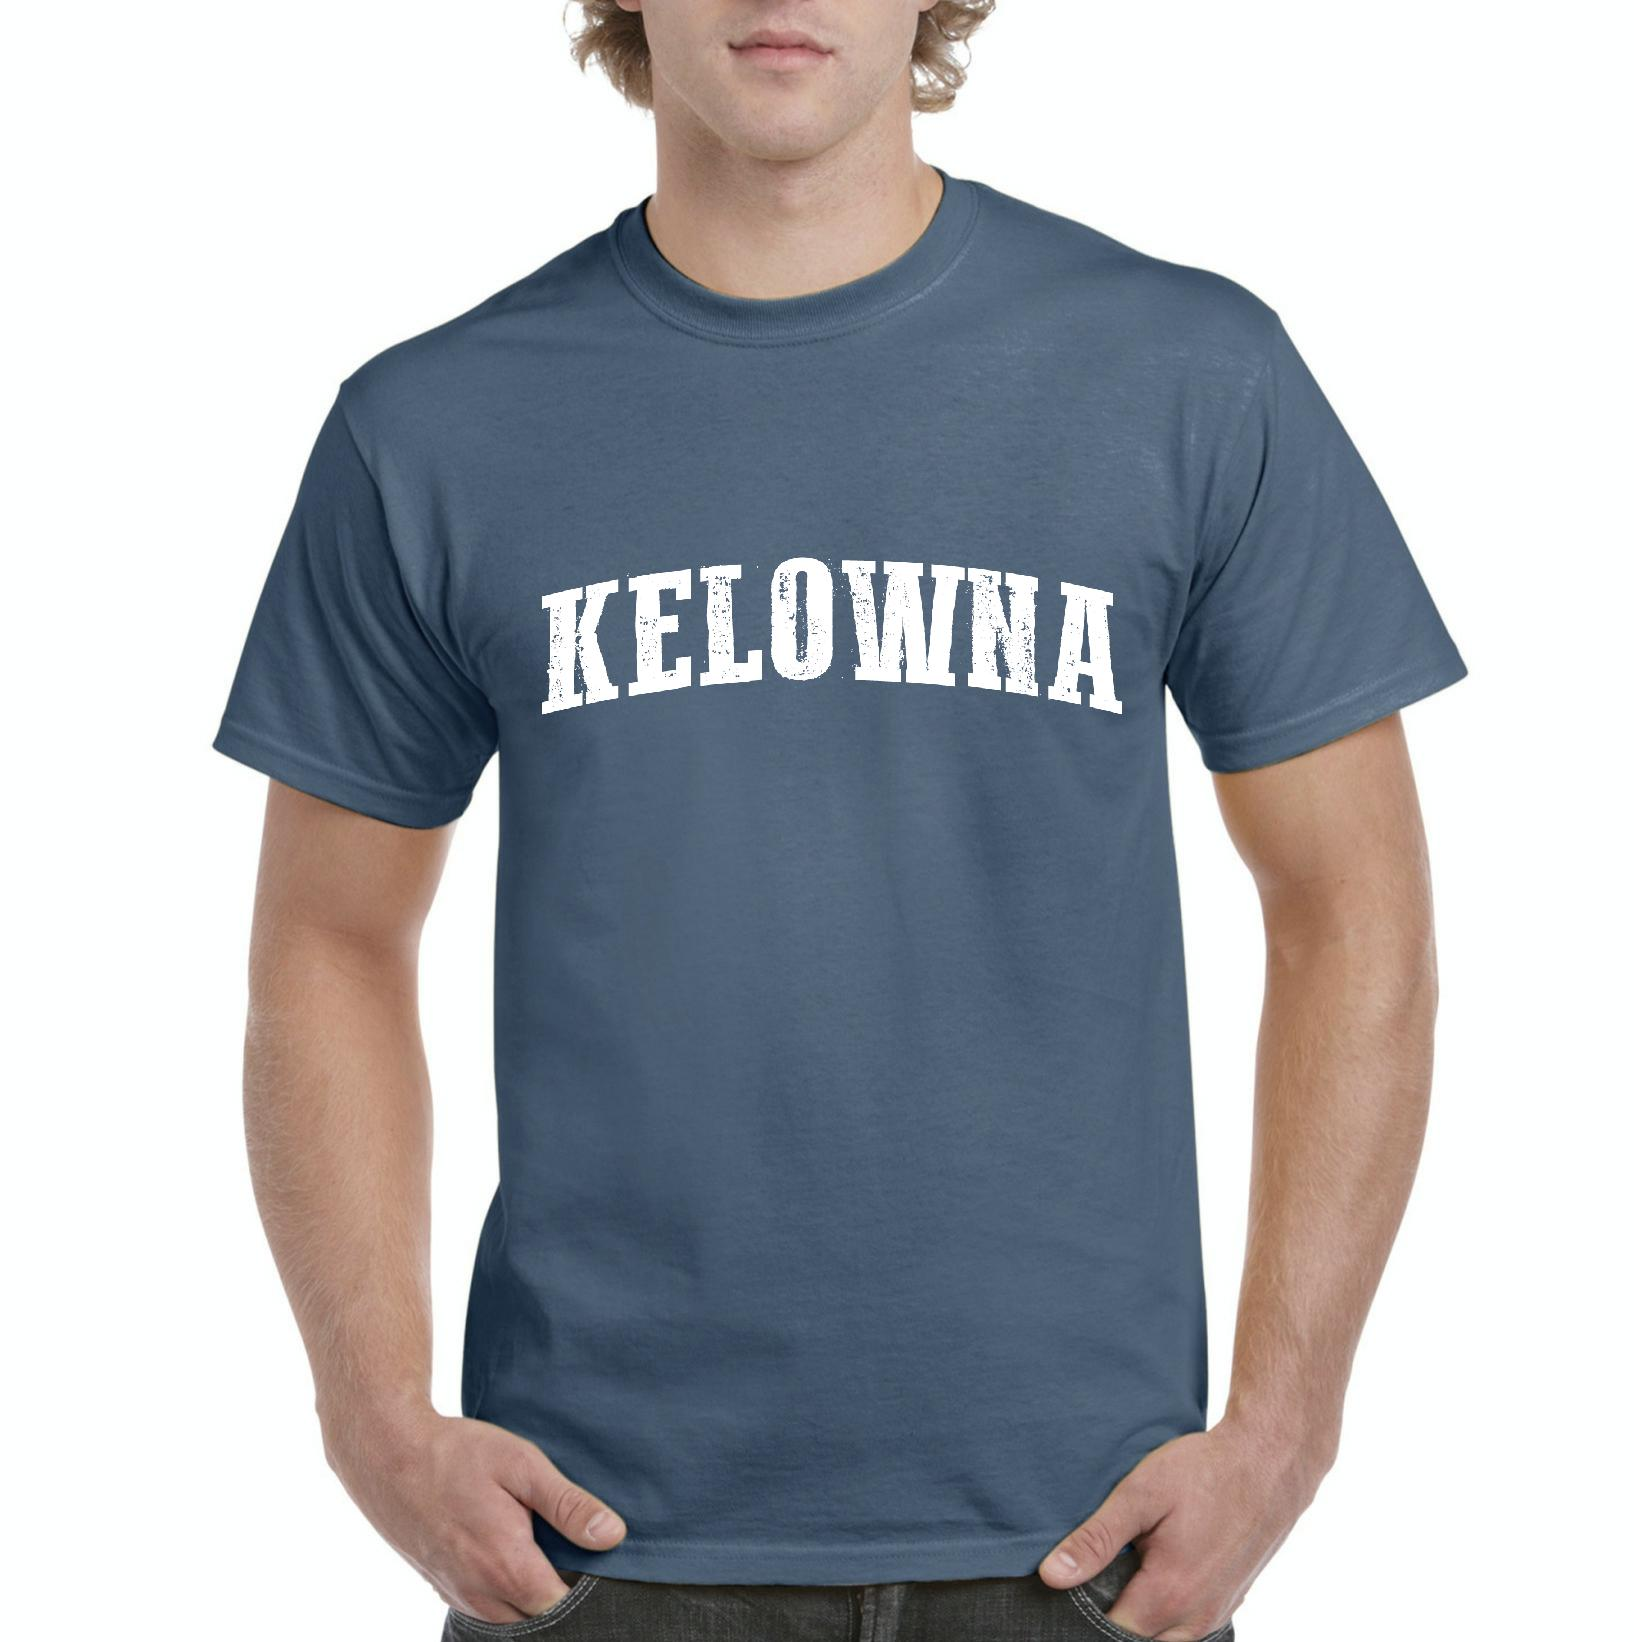 Kelowna British Columbia  Mens Shirts